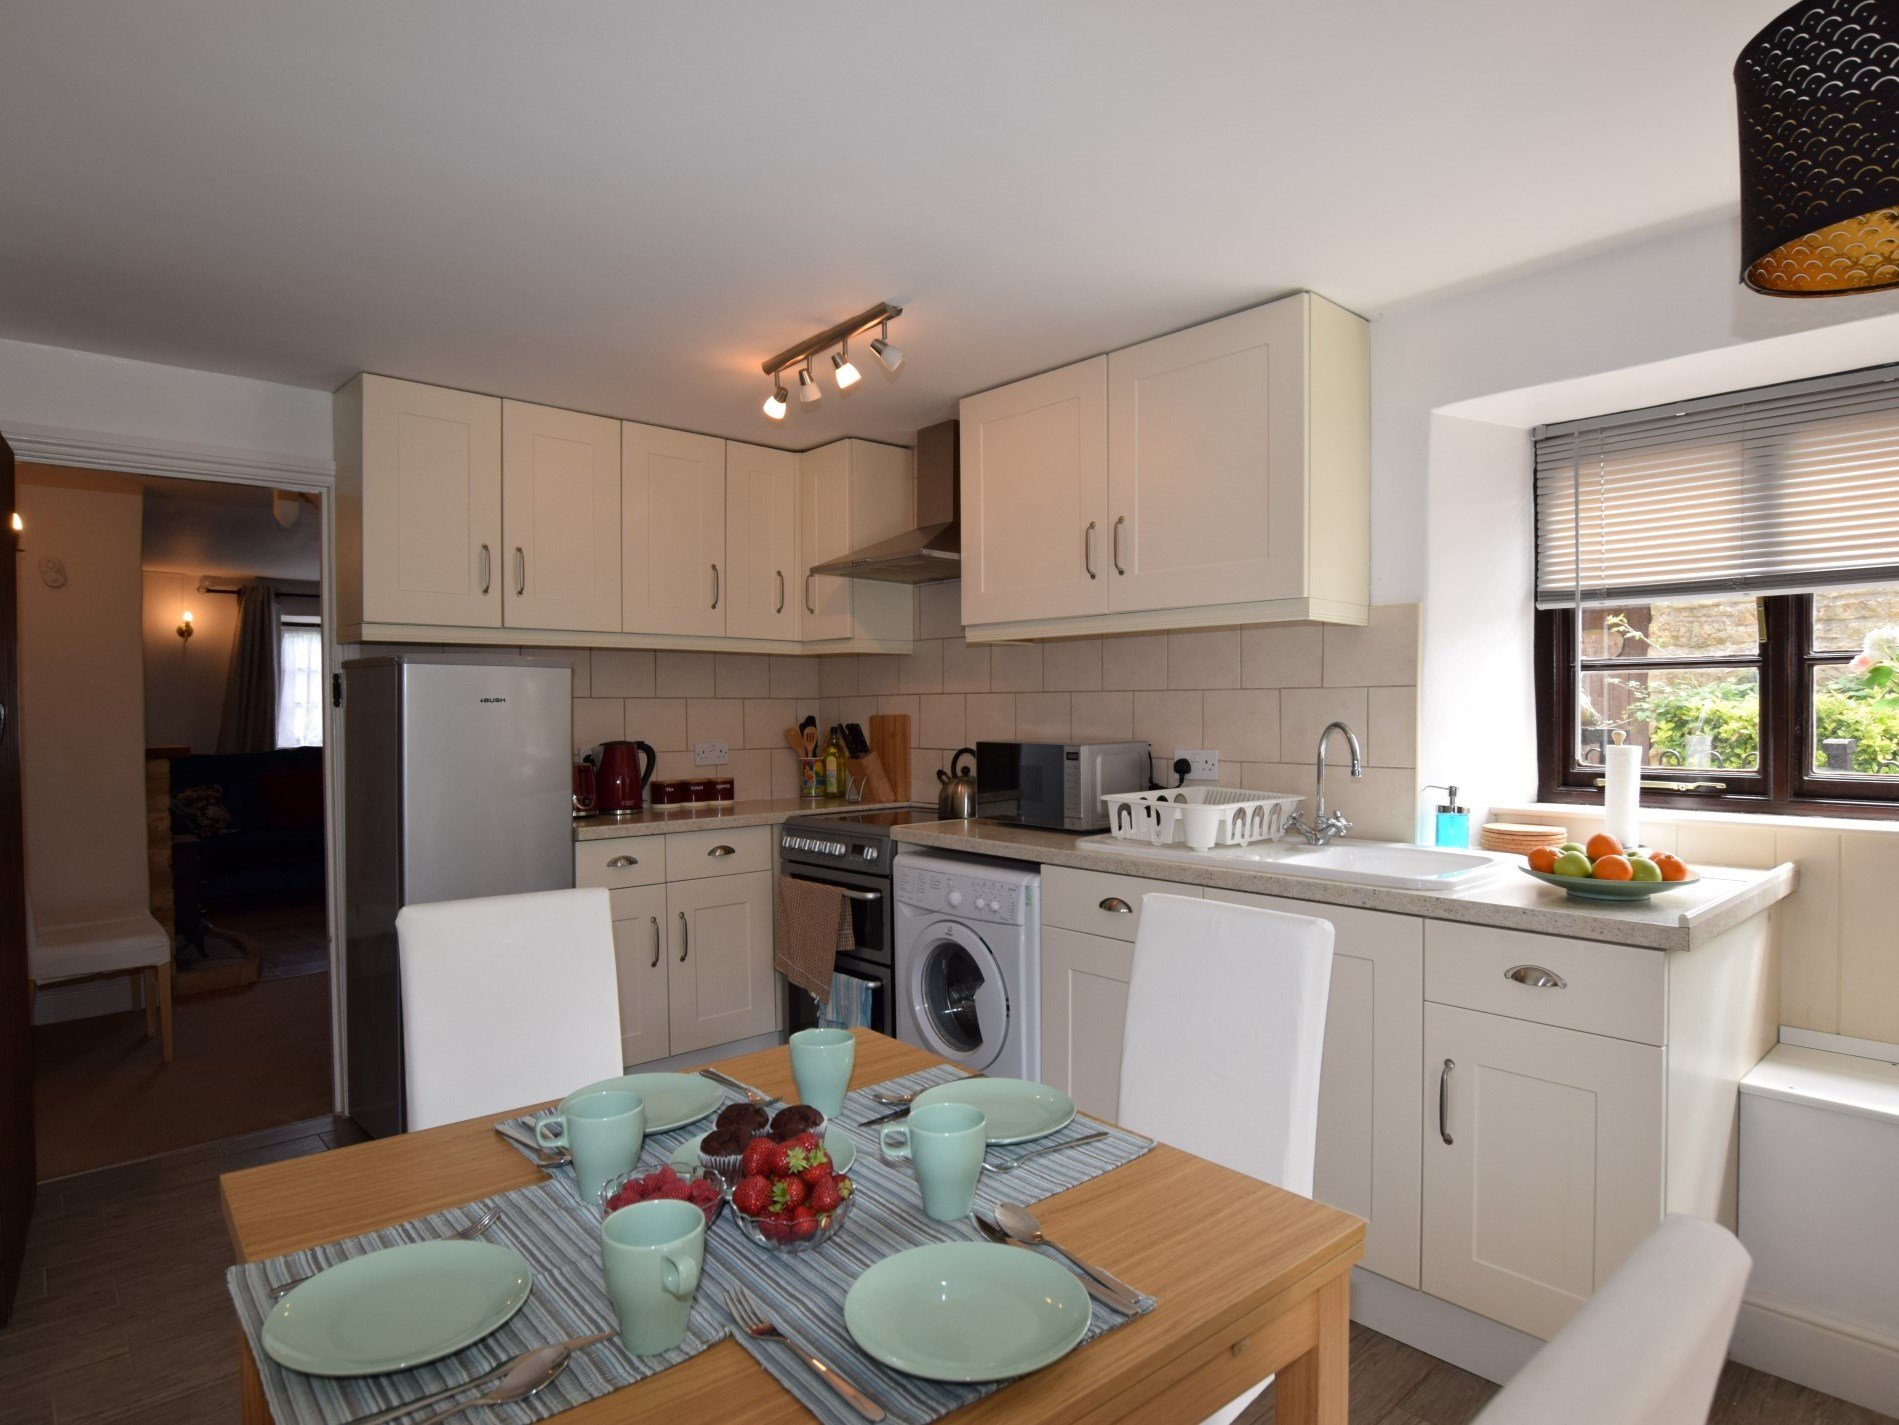 Kitchen and dining area with views onto the pretty cobbled street